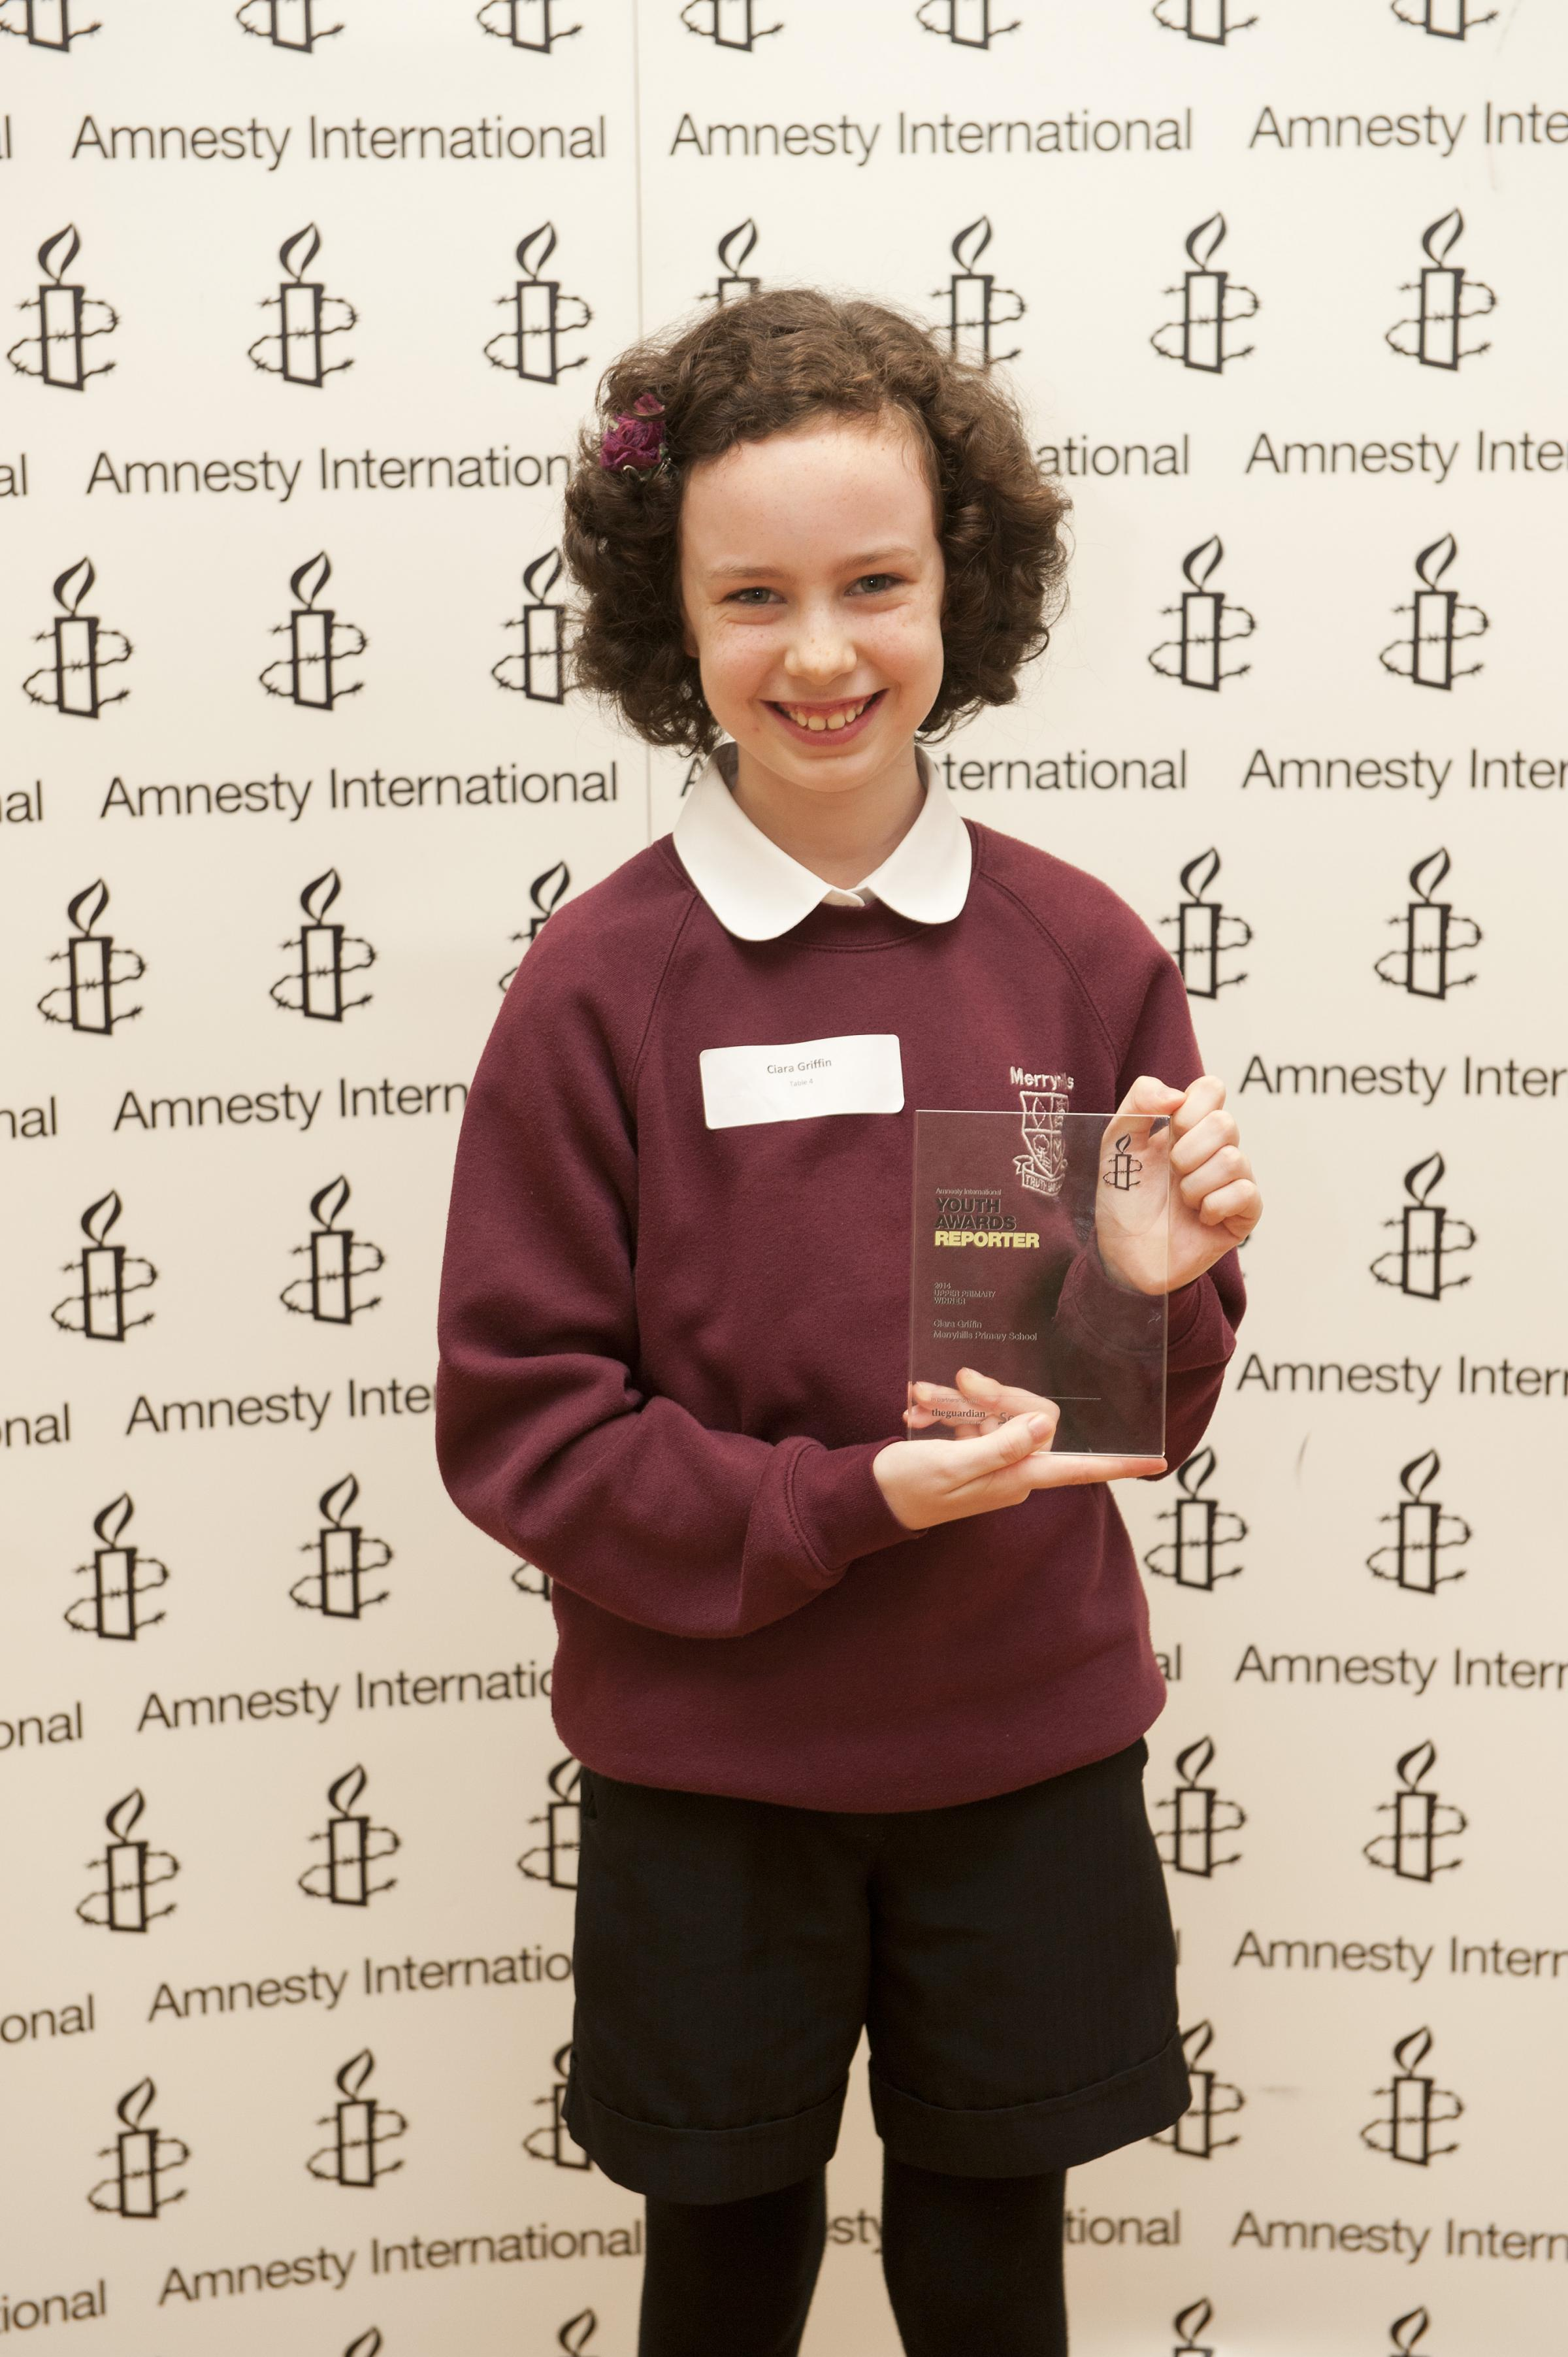 Ciara Griffin, 11 of Merryhills Primary School in Enfield, was crowned Young Human Rights Reporter